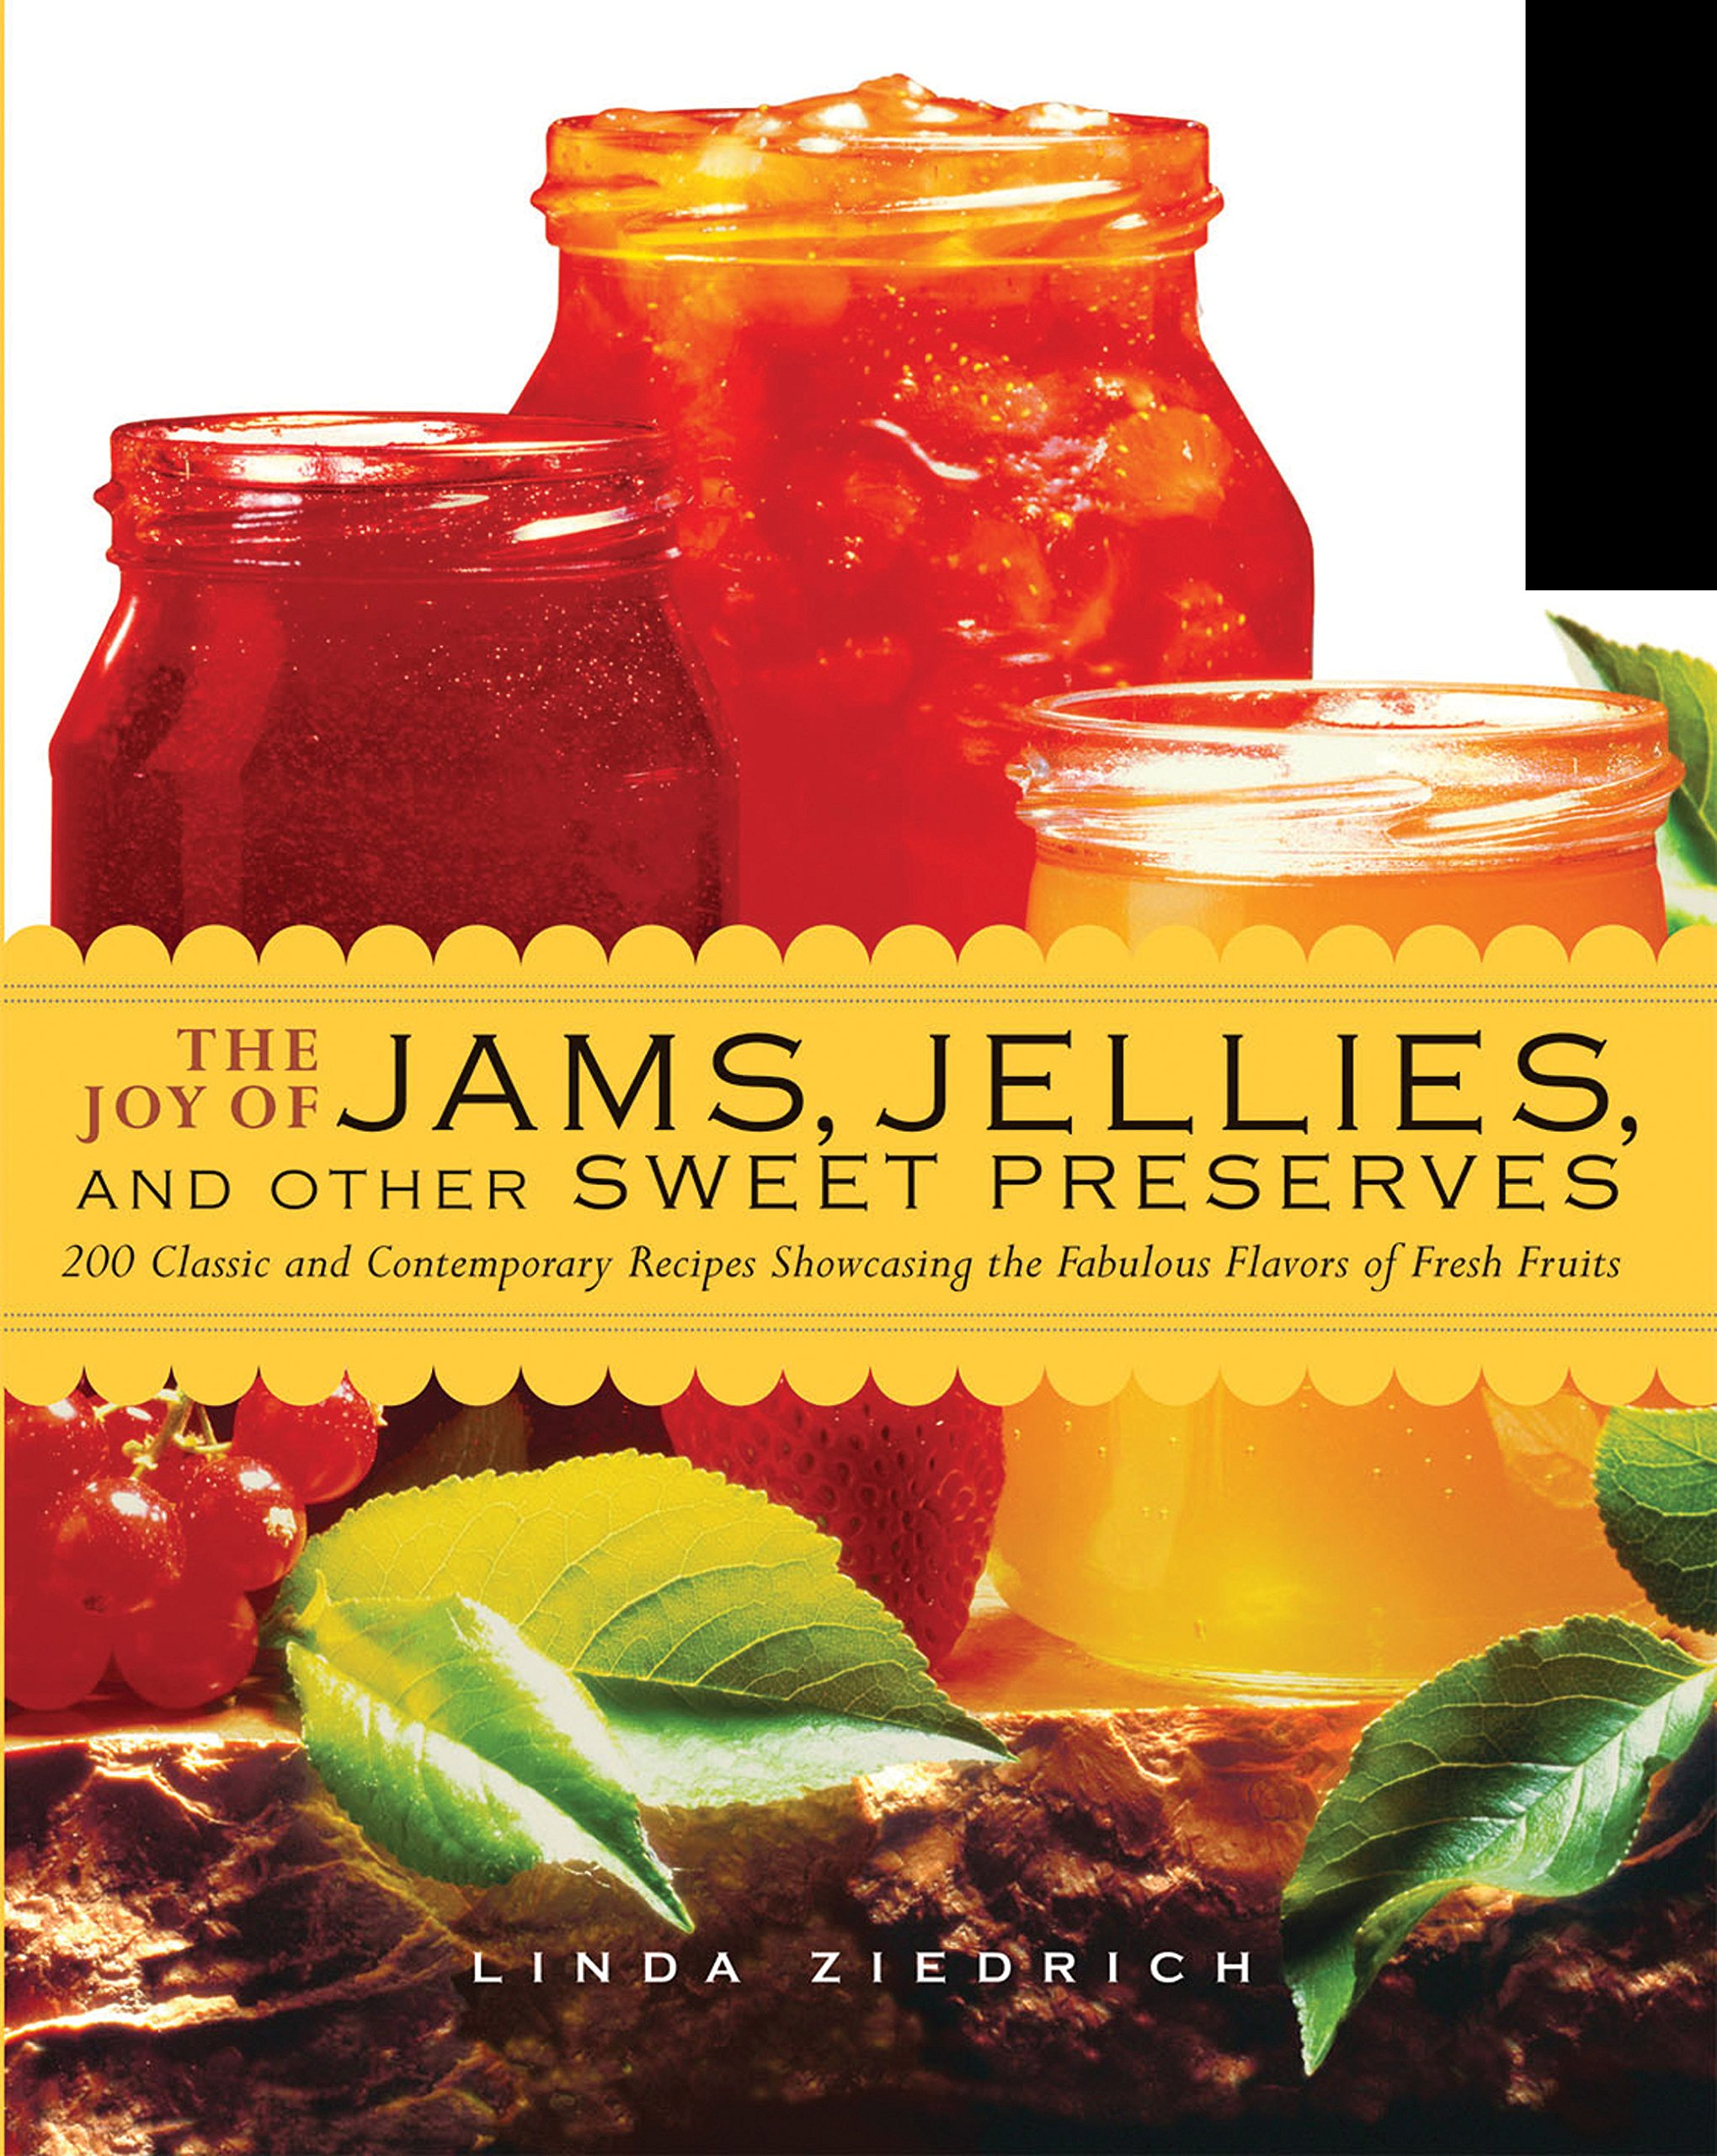 The Joy of Jams, Jellies, and Other Sweet Preserves: 200 Classic and Contemporary Recipes Showcasing the Fabulous Flavors of Fresh Fruits pdf